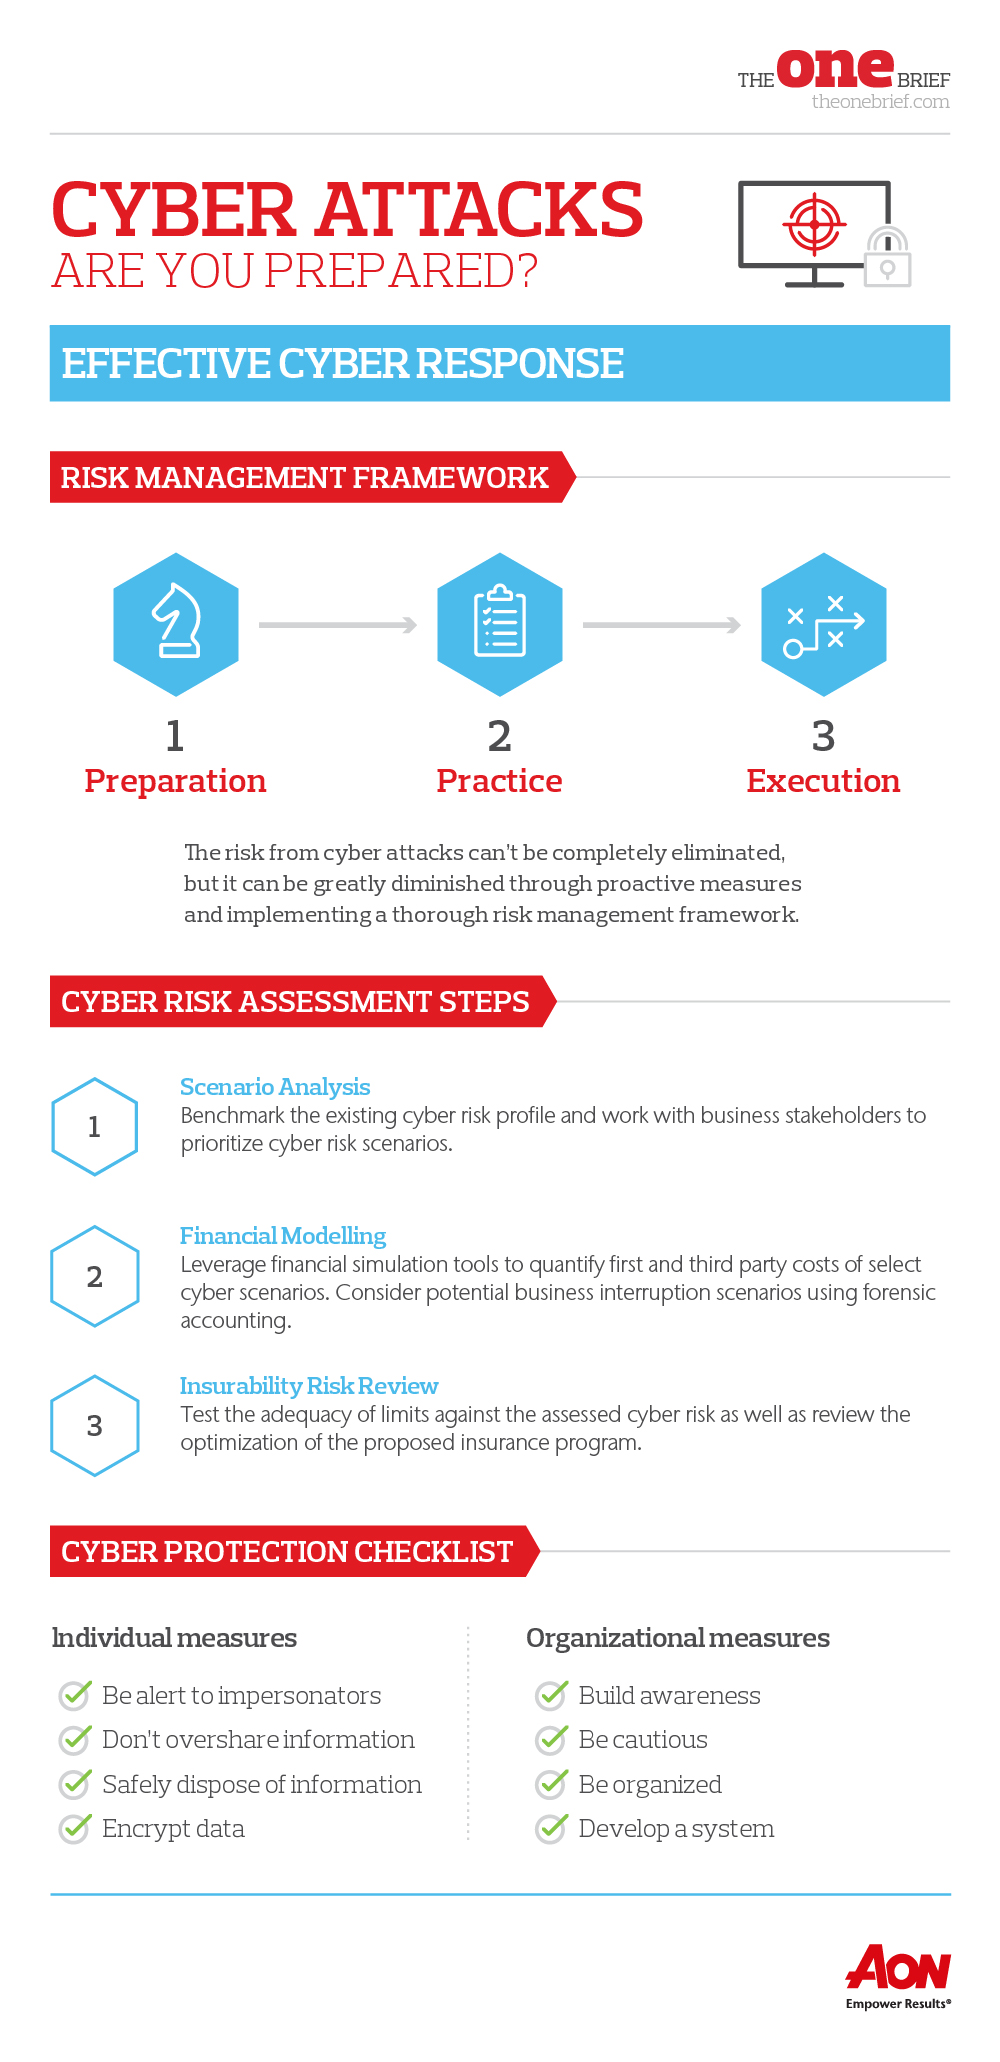 The One Brief Effective cyber response